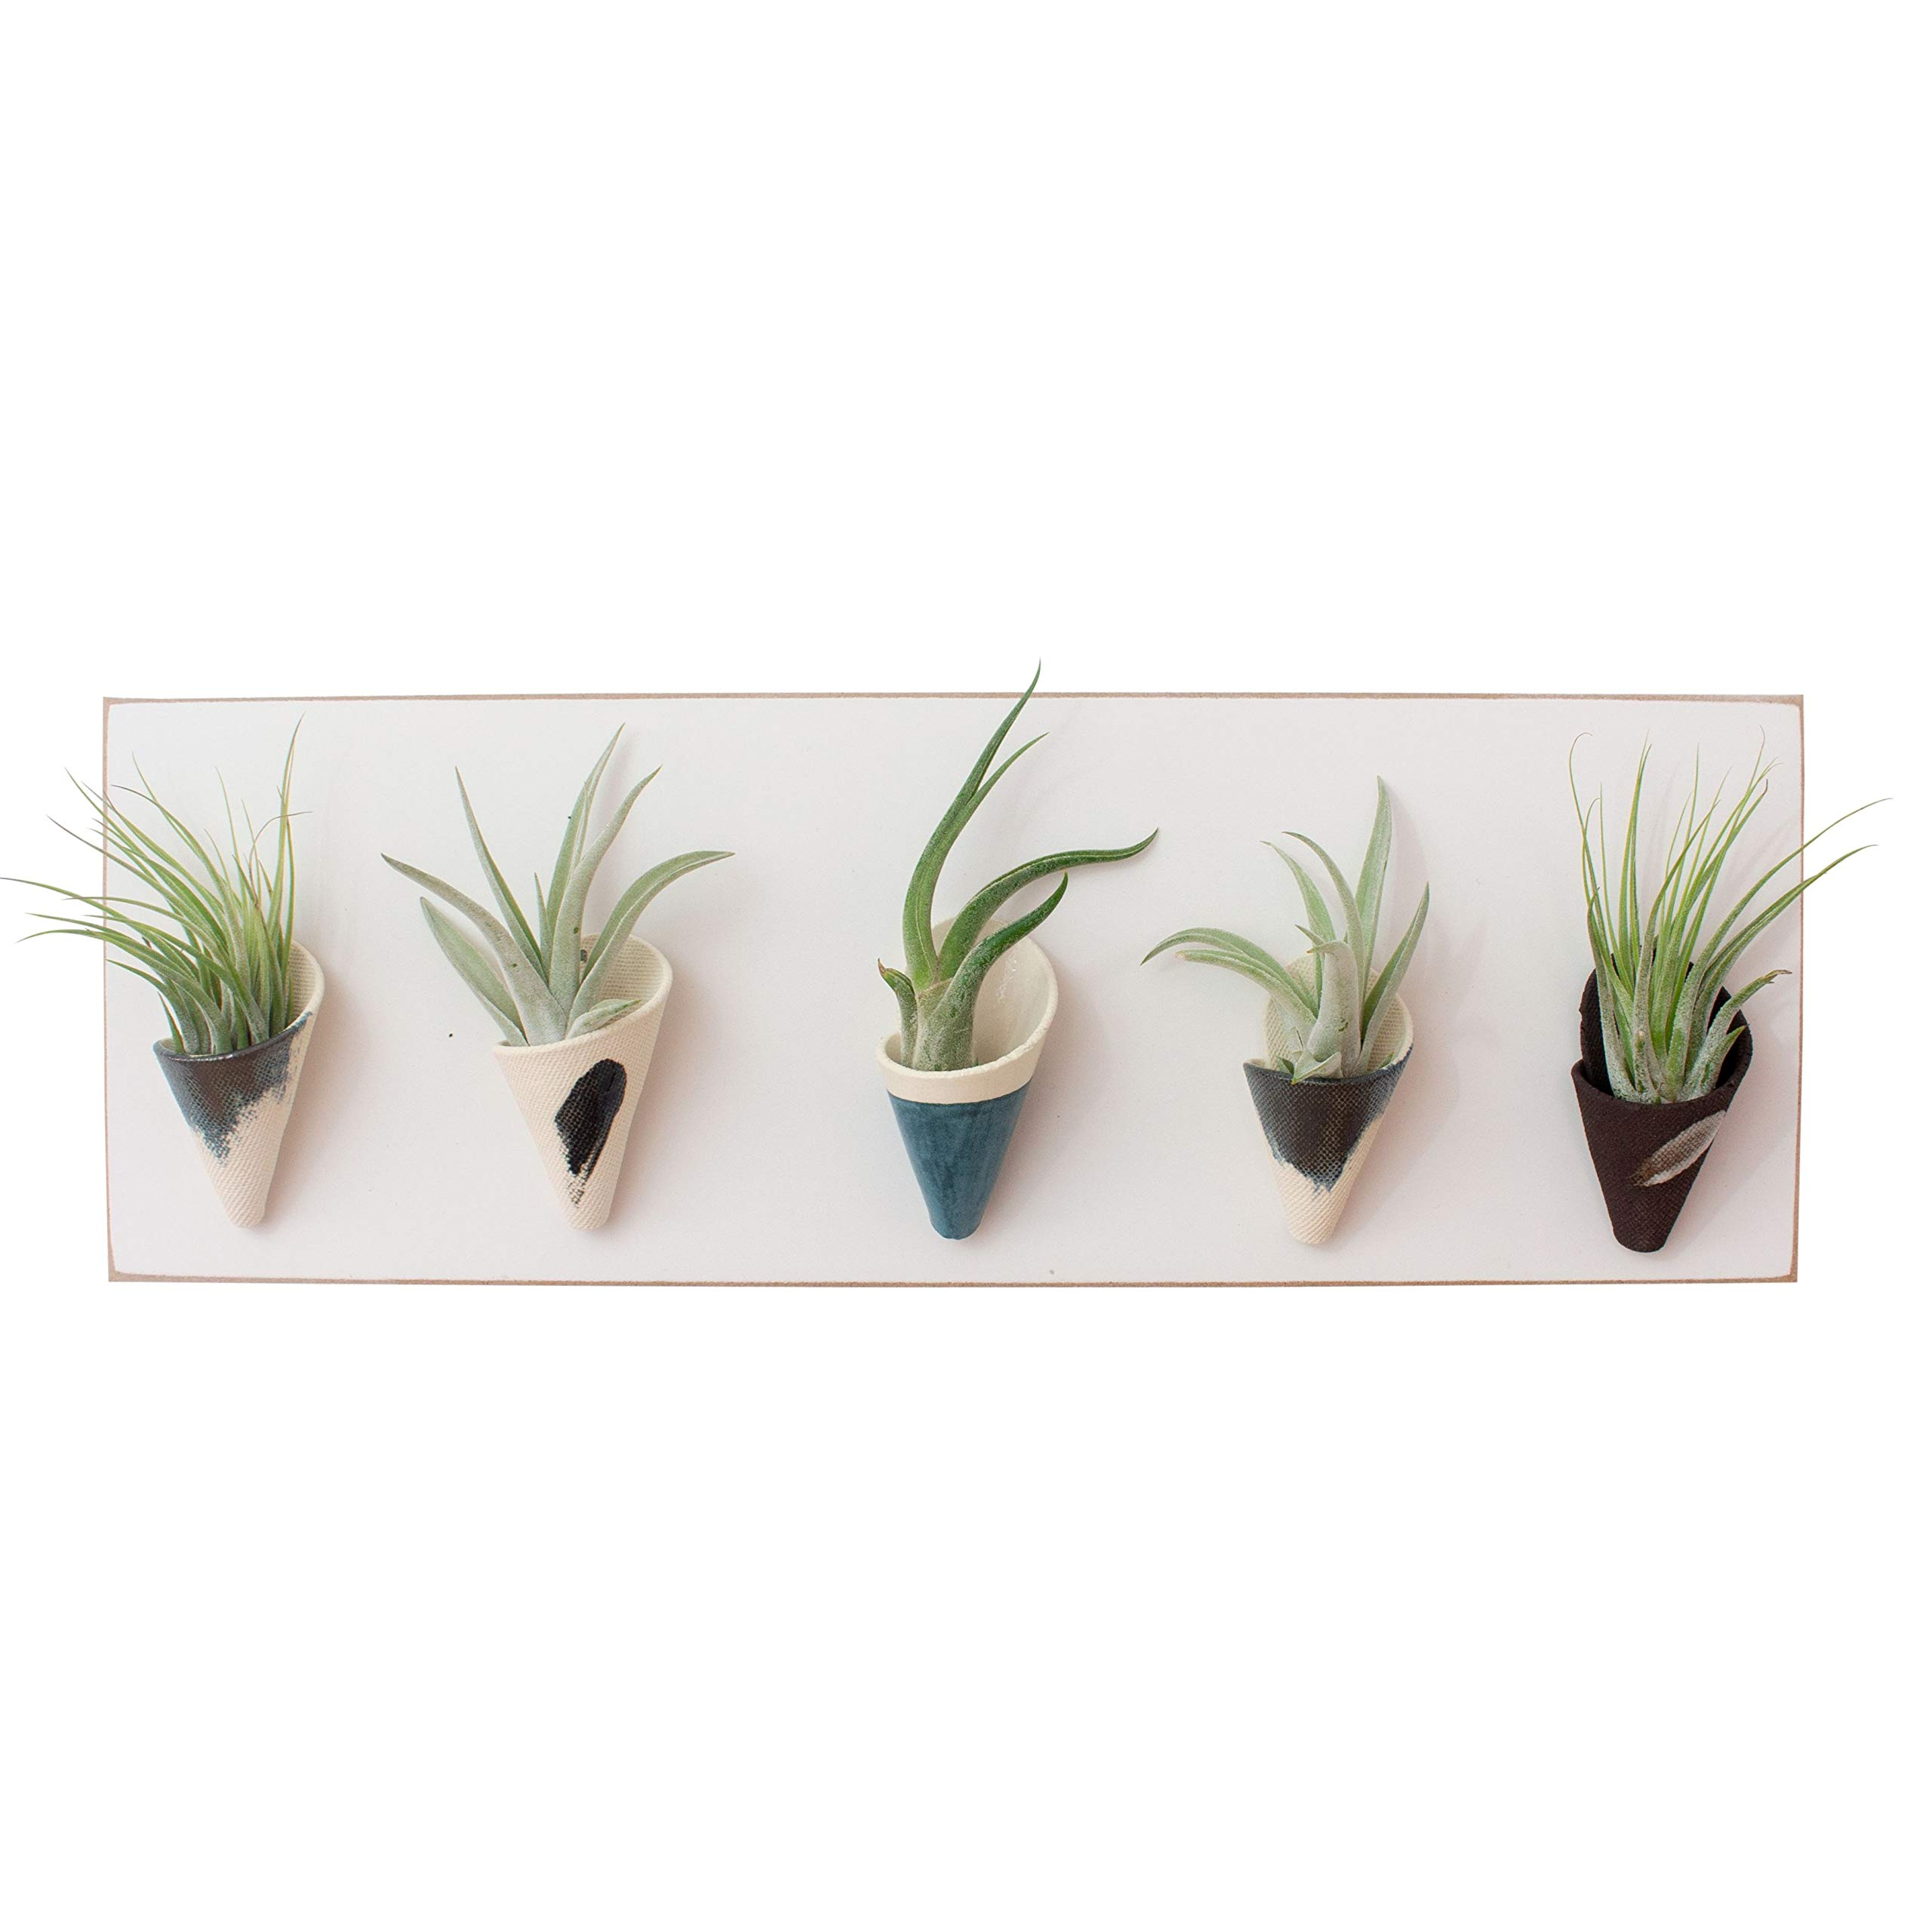 Carter & Rose Ceramic and Wood Wall Planter Horizontal (Air Plant Included, Dusk/White)